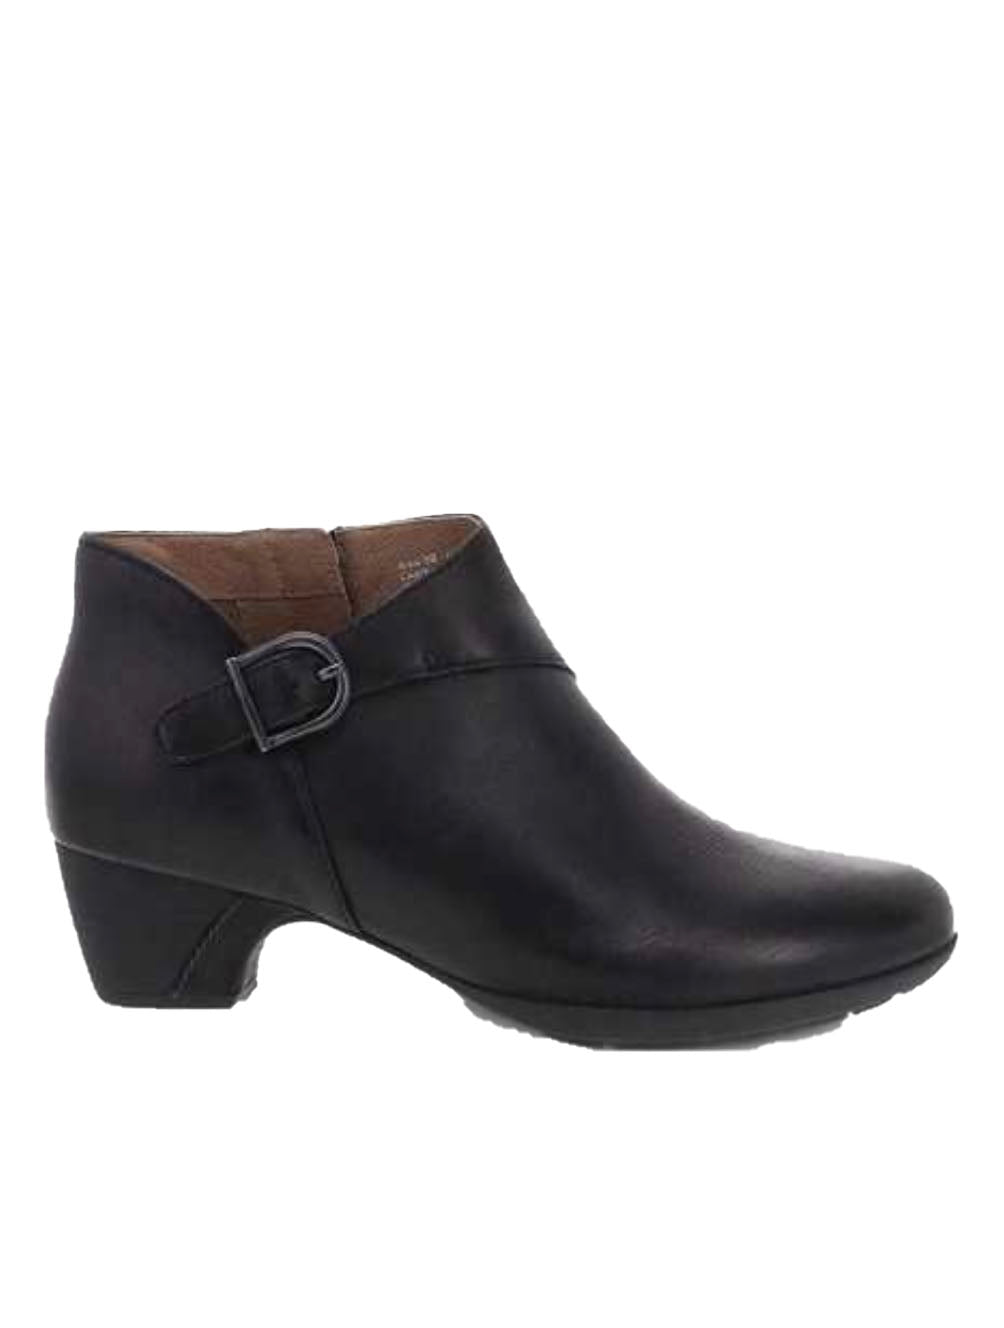 Dansko Darbie Heeled Bootie in Black